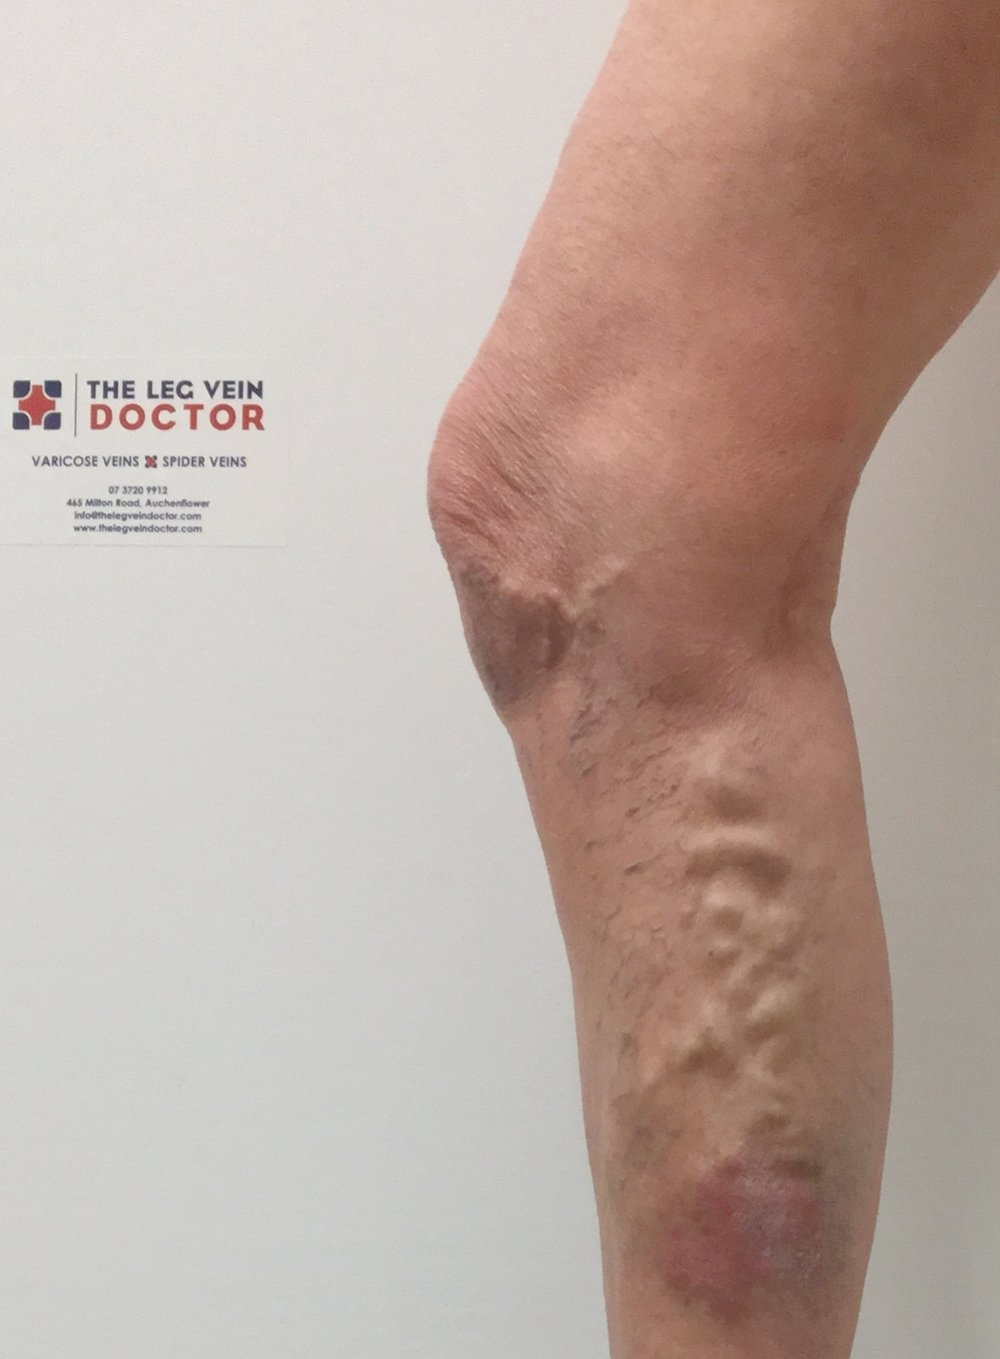 Varicose Veins on a patient at The Leg Vein Doctor.